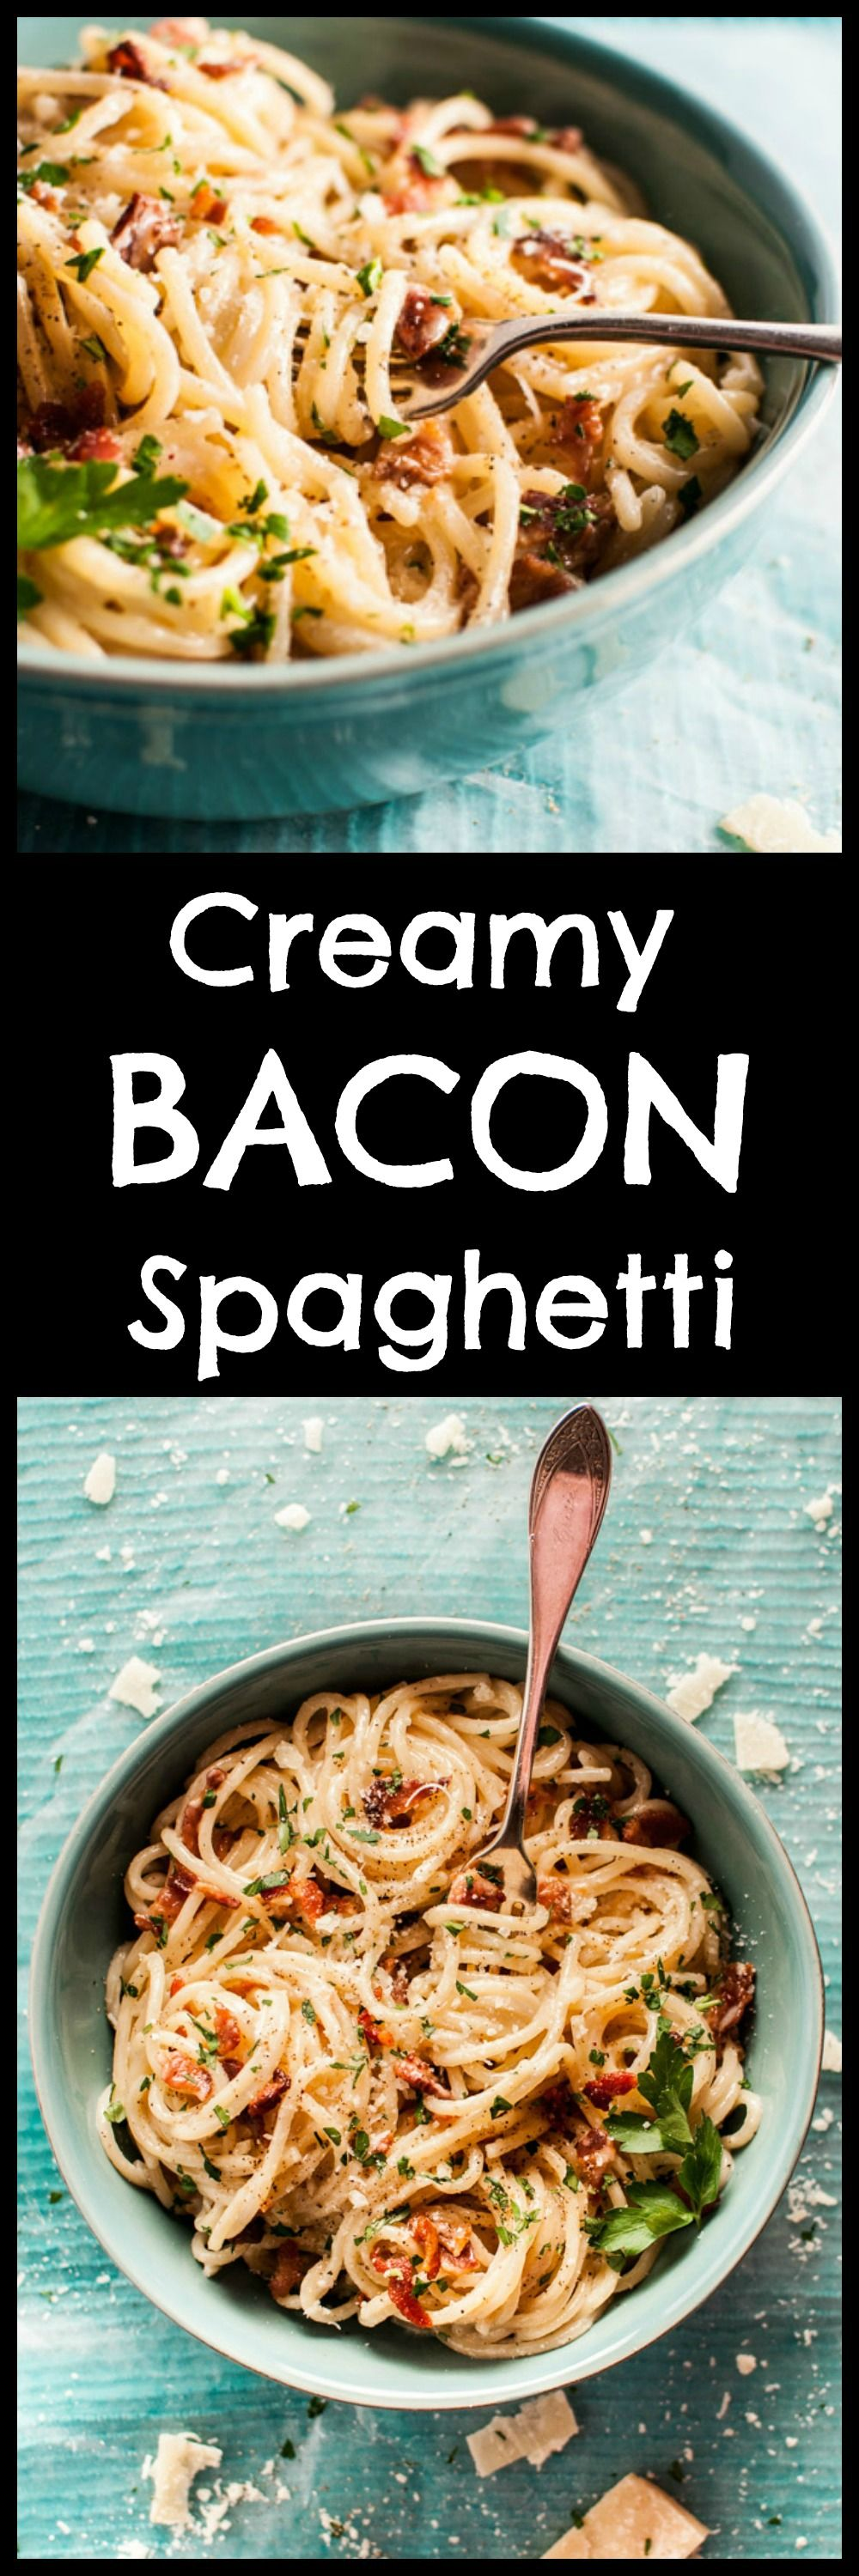 Creamy bacon spaghetti is decadent and delicious, and it's ready in only 30 minutes! Treat yourself. Pin for later :)